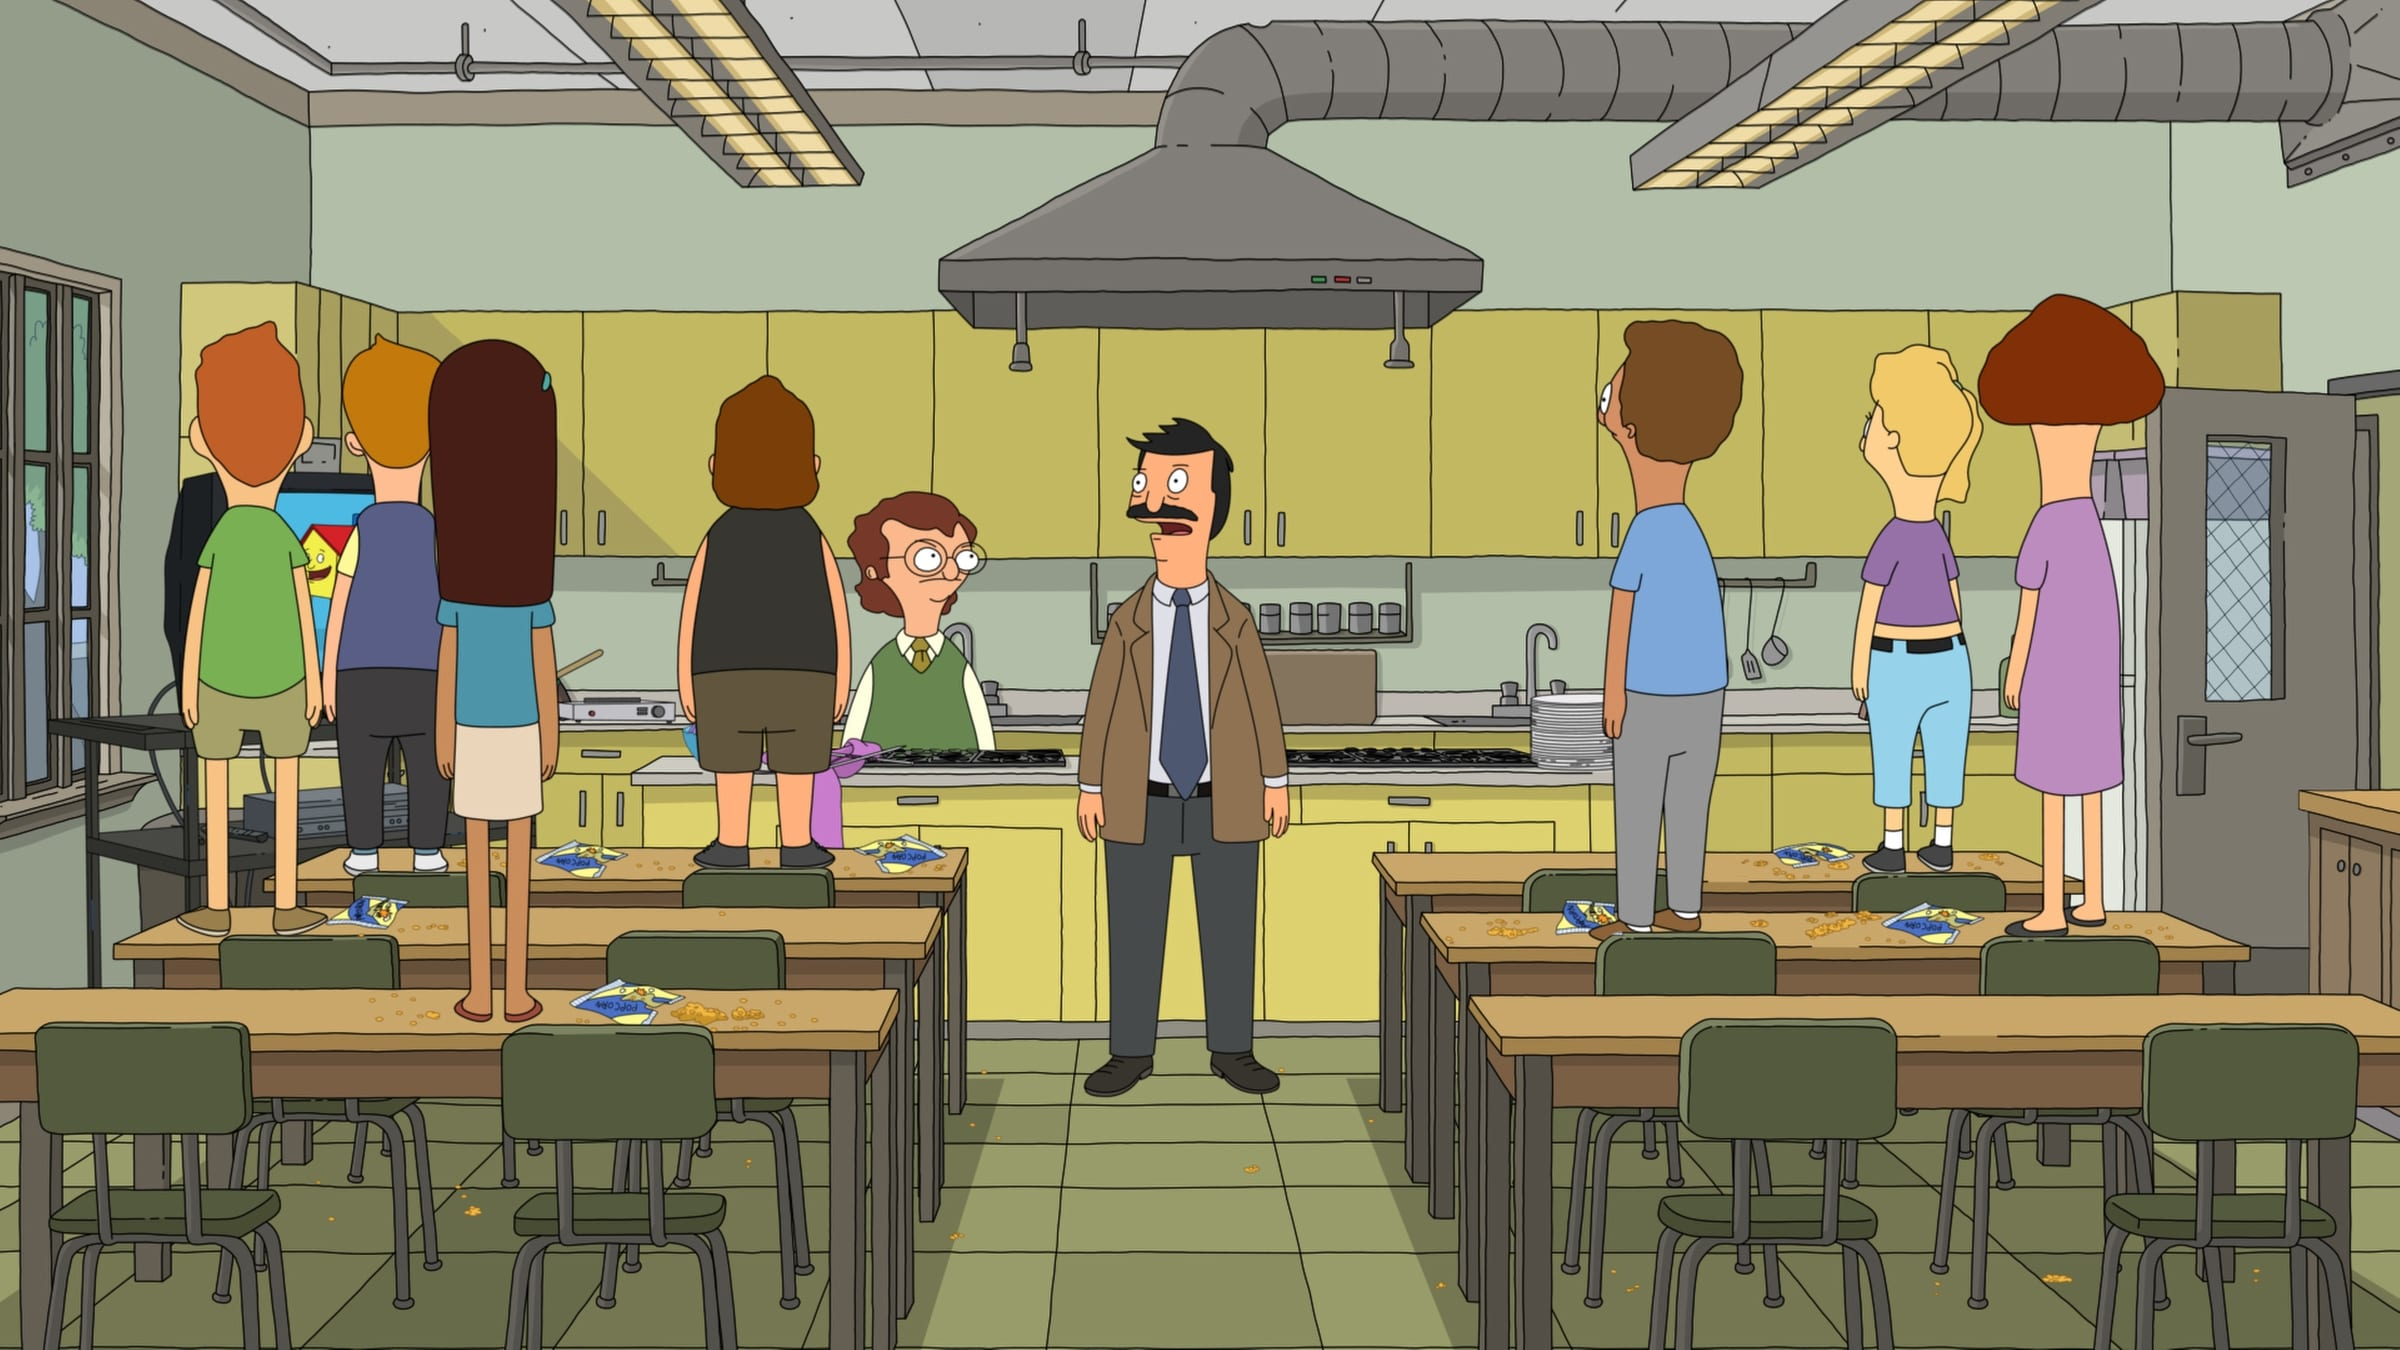 Bob's Burgers - Season 4 Episode 7 : Bob and Deliver